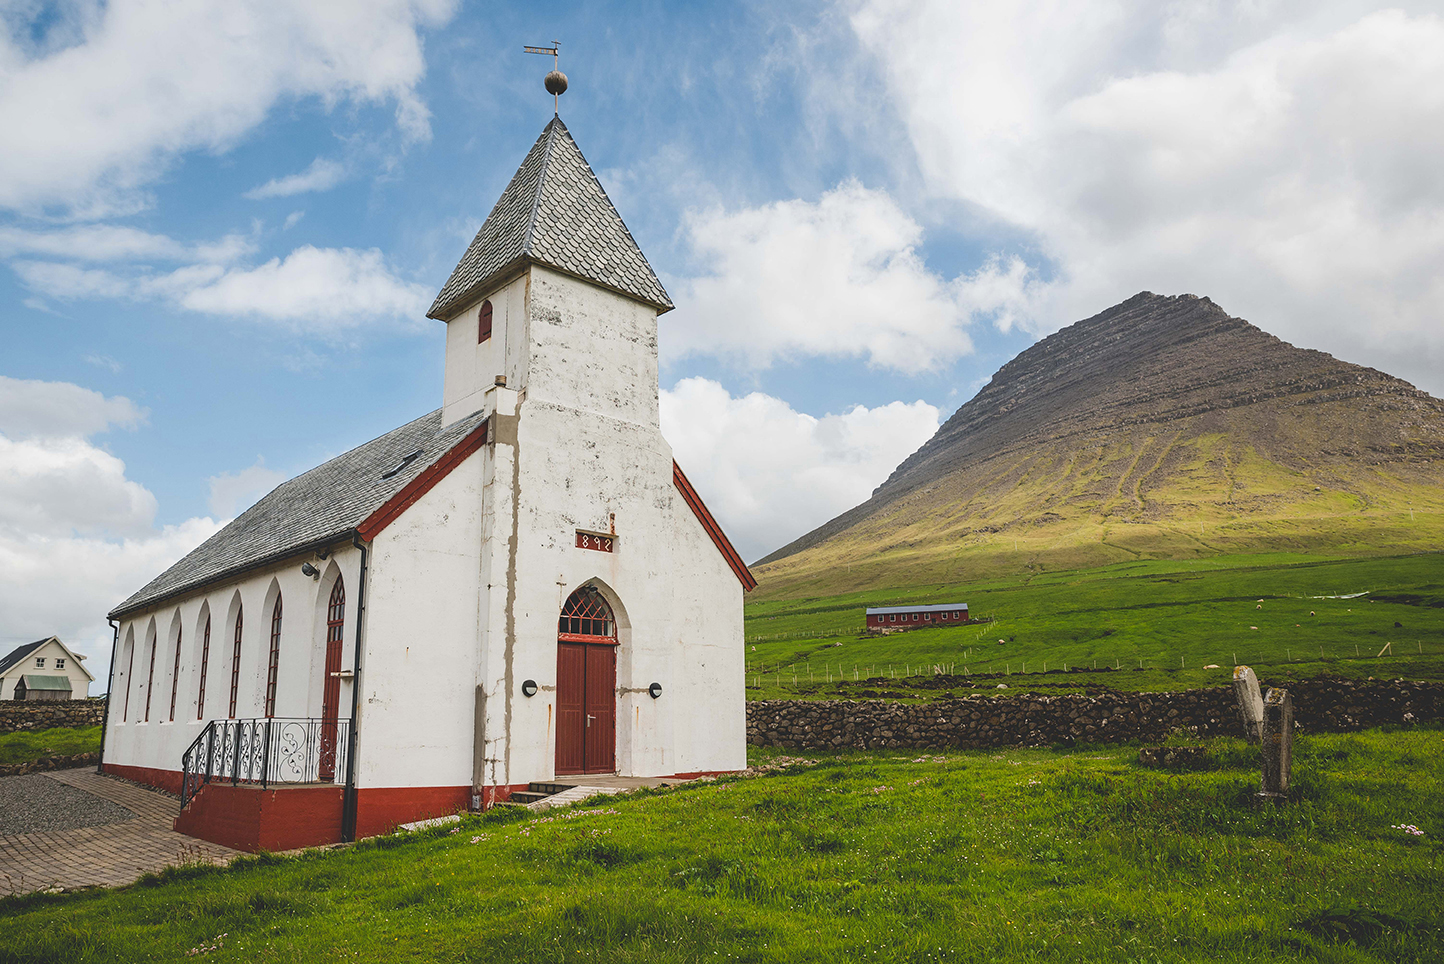 FaroeIslands_Day2_23-6-17_TAL-114.jpg